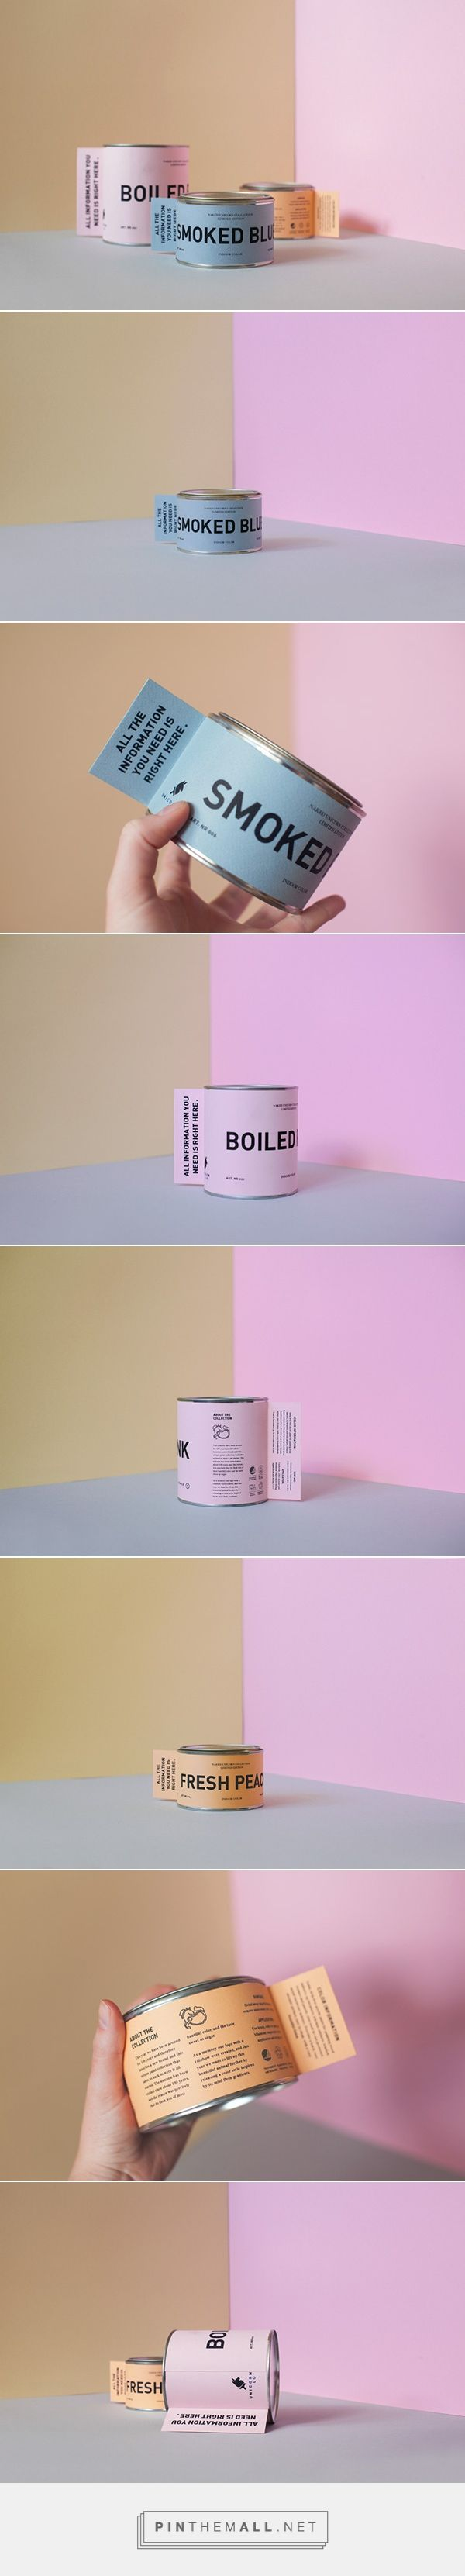 """THE NAKED UNICORN COLLECTION on Packaging Design Served 